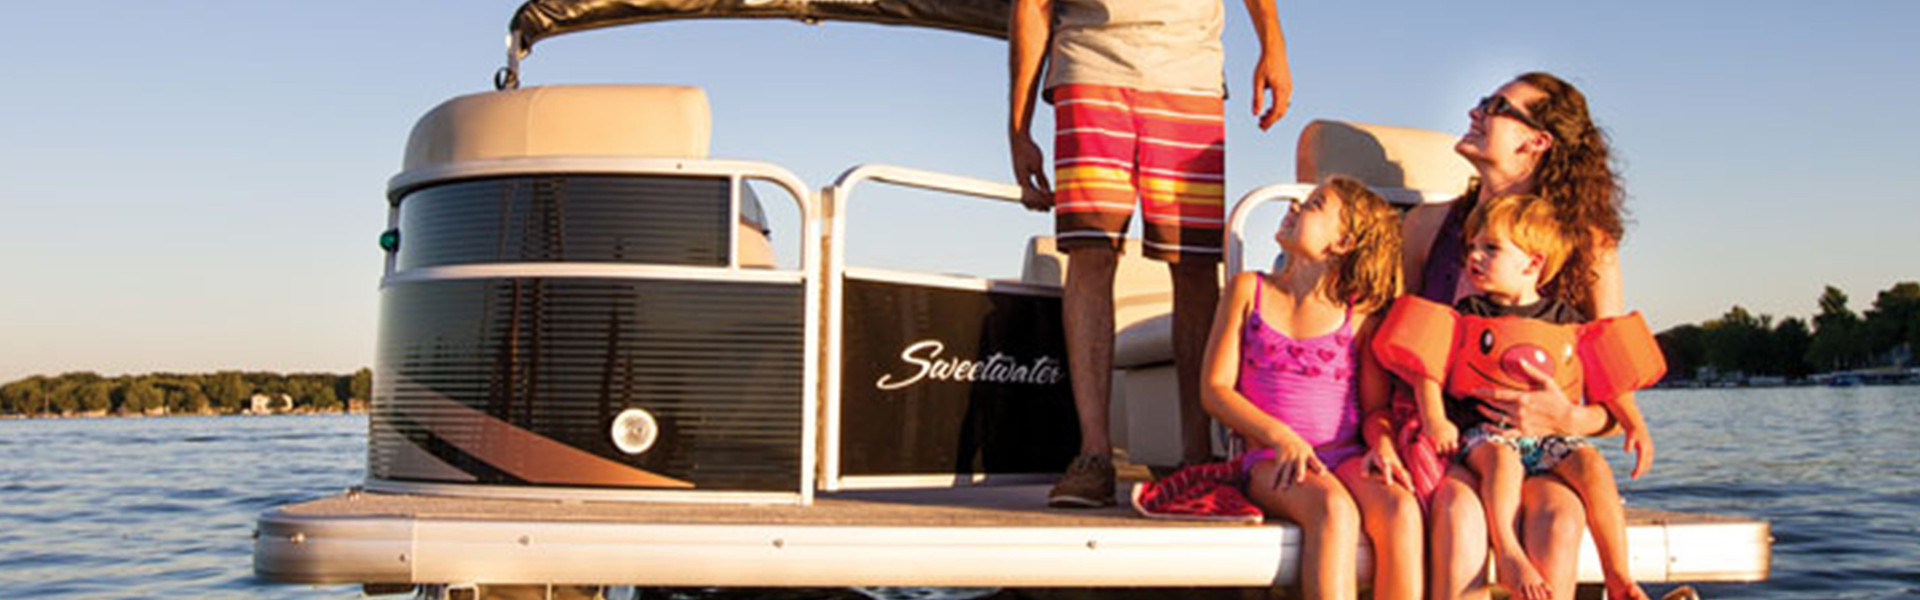 The best boat rental Orlando Florida has to offer | Orlando boat rentals at Westgate Lakes Resort & Spa Right Off Turkey Lake